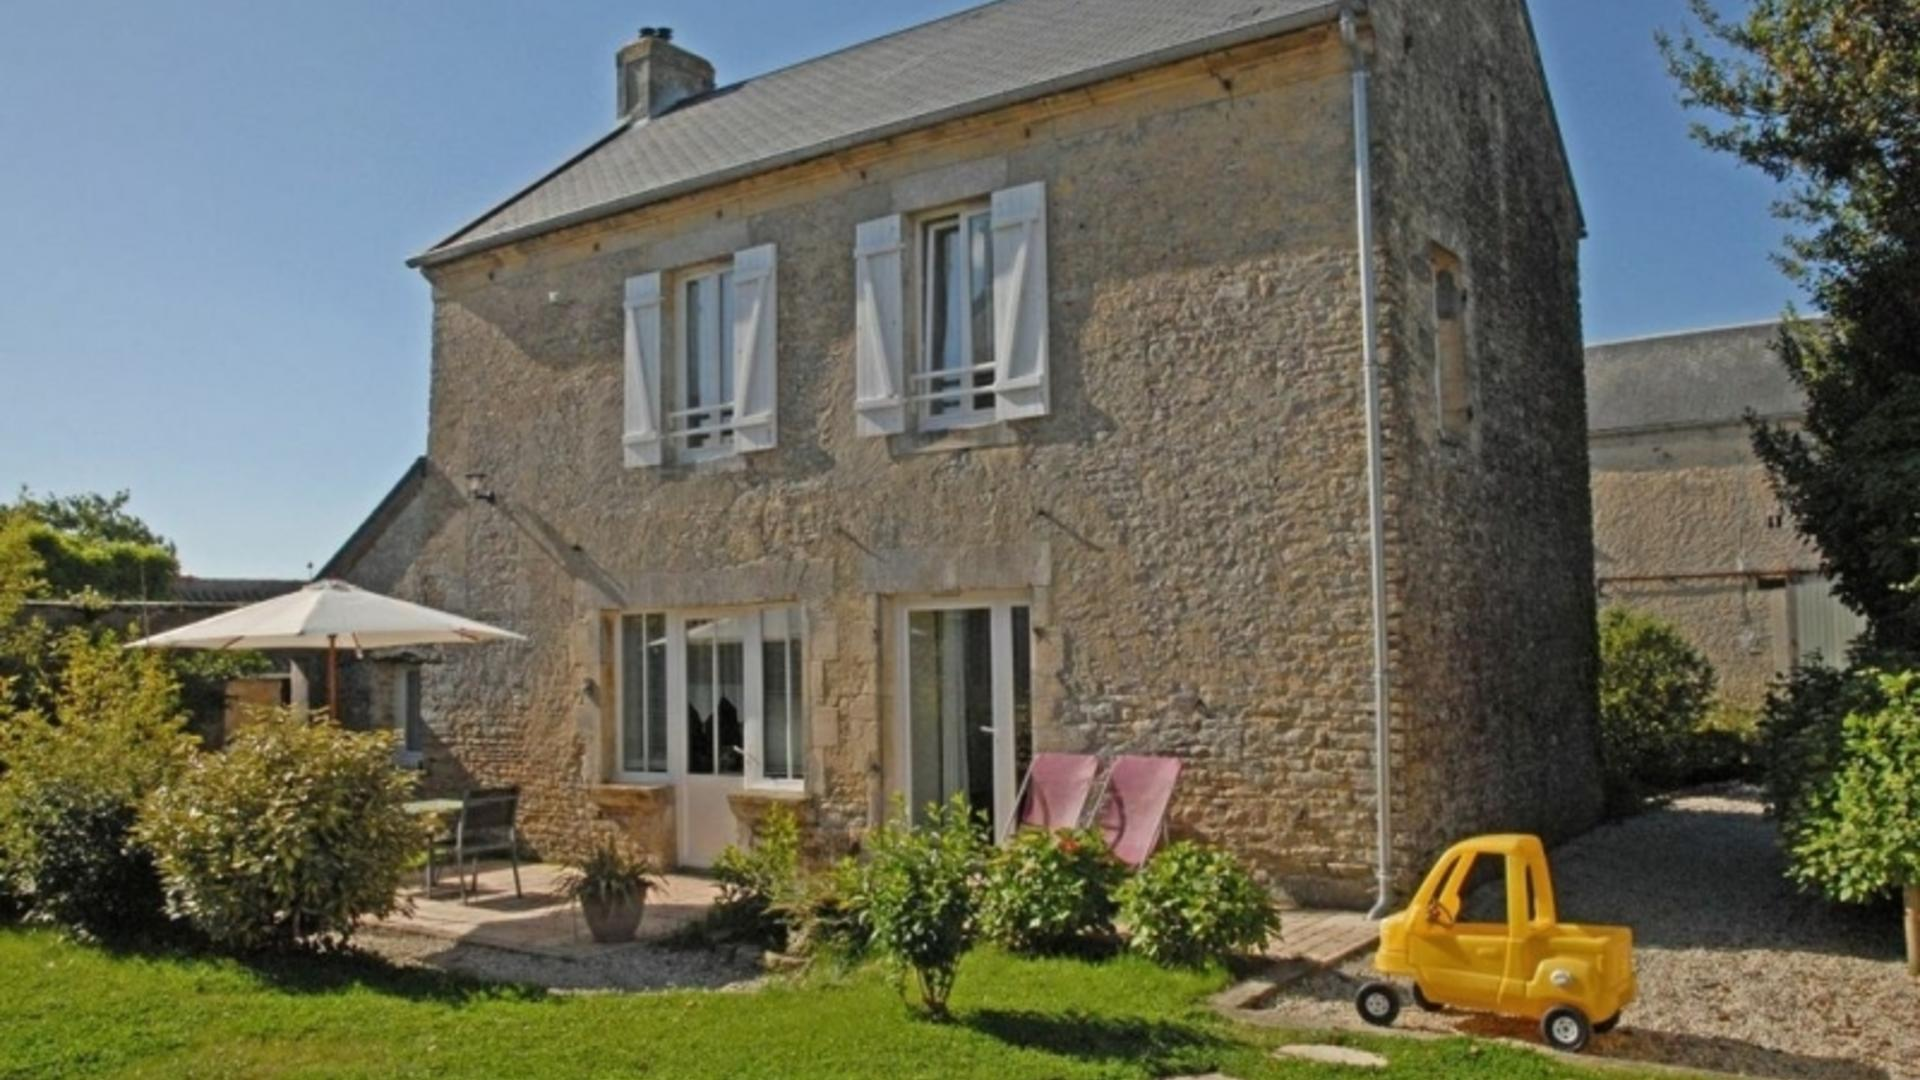 3 Bedroom Cottage/shared facilities in Normandy, France